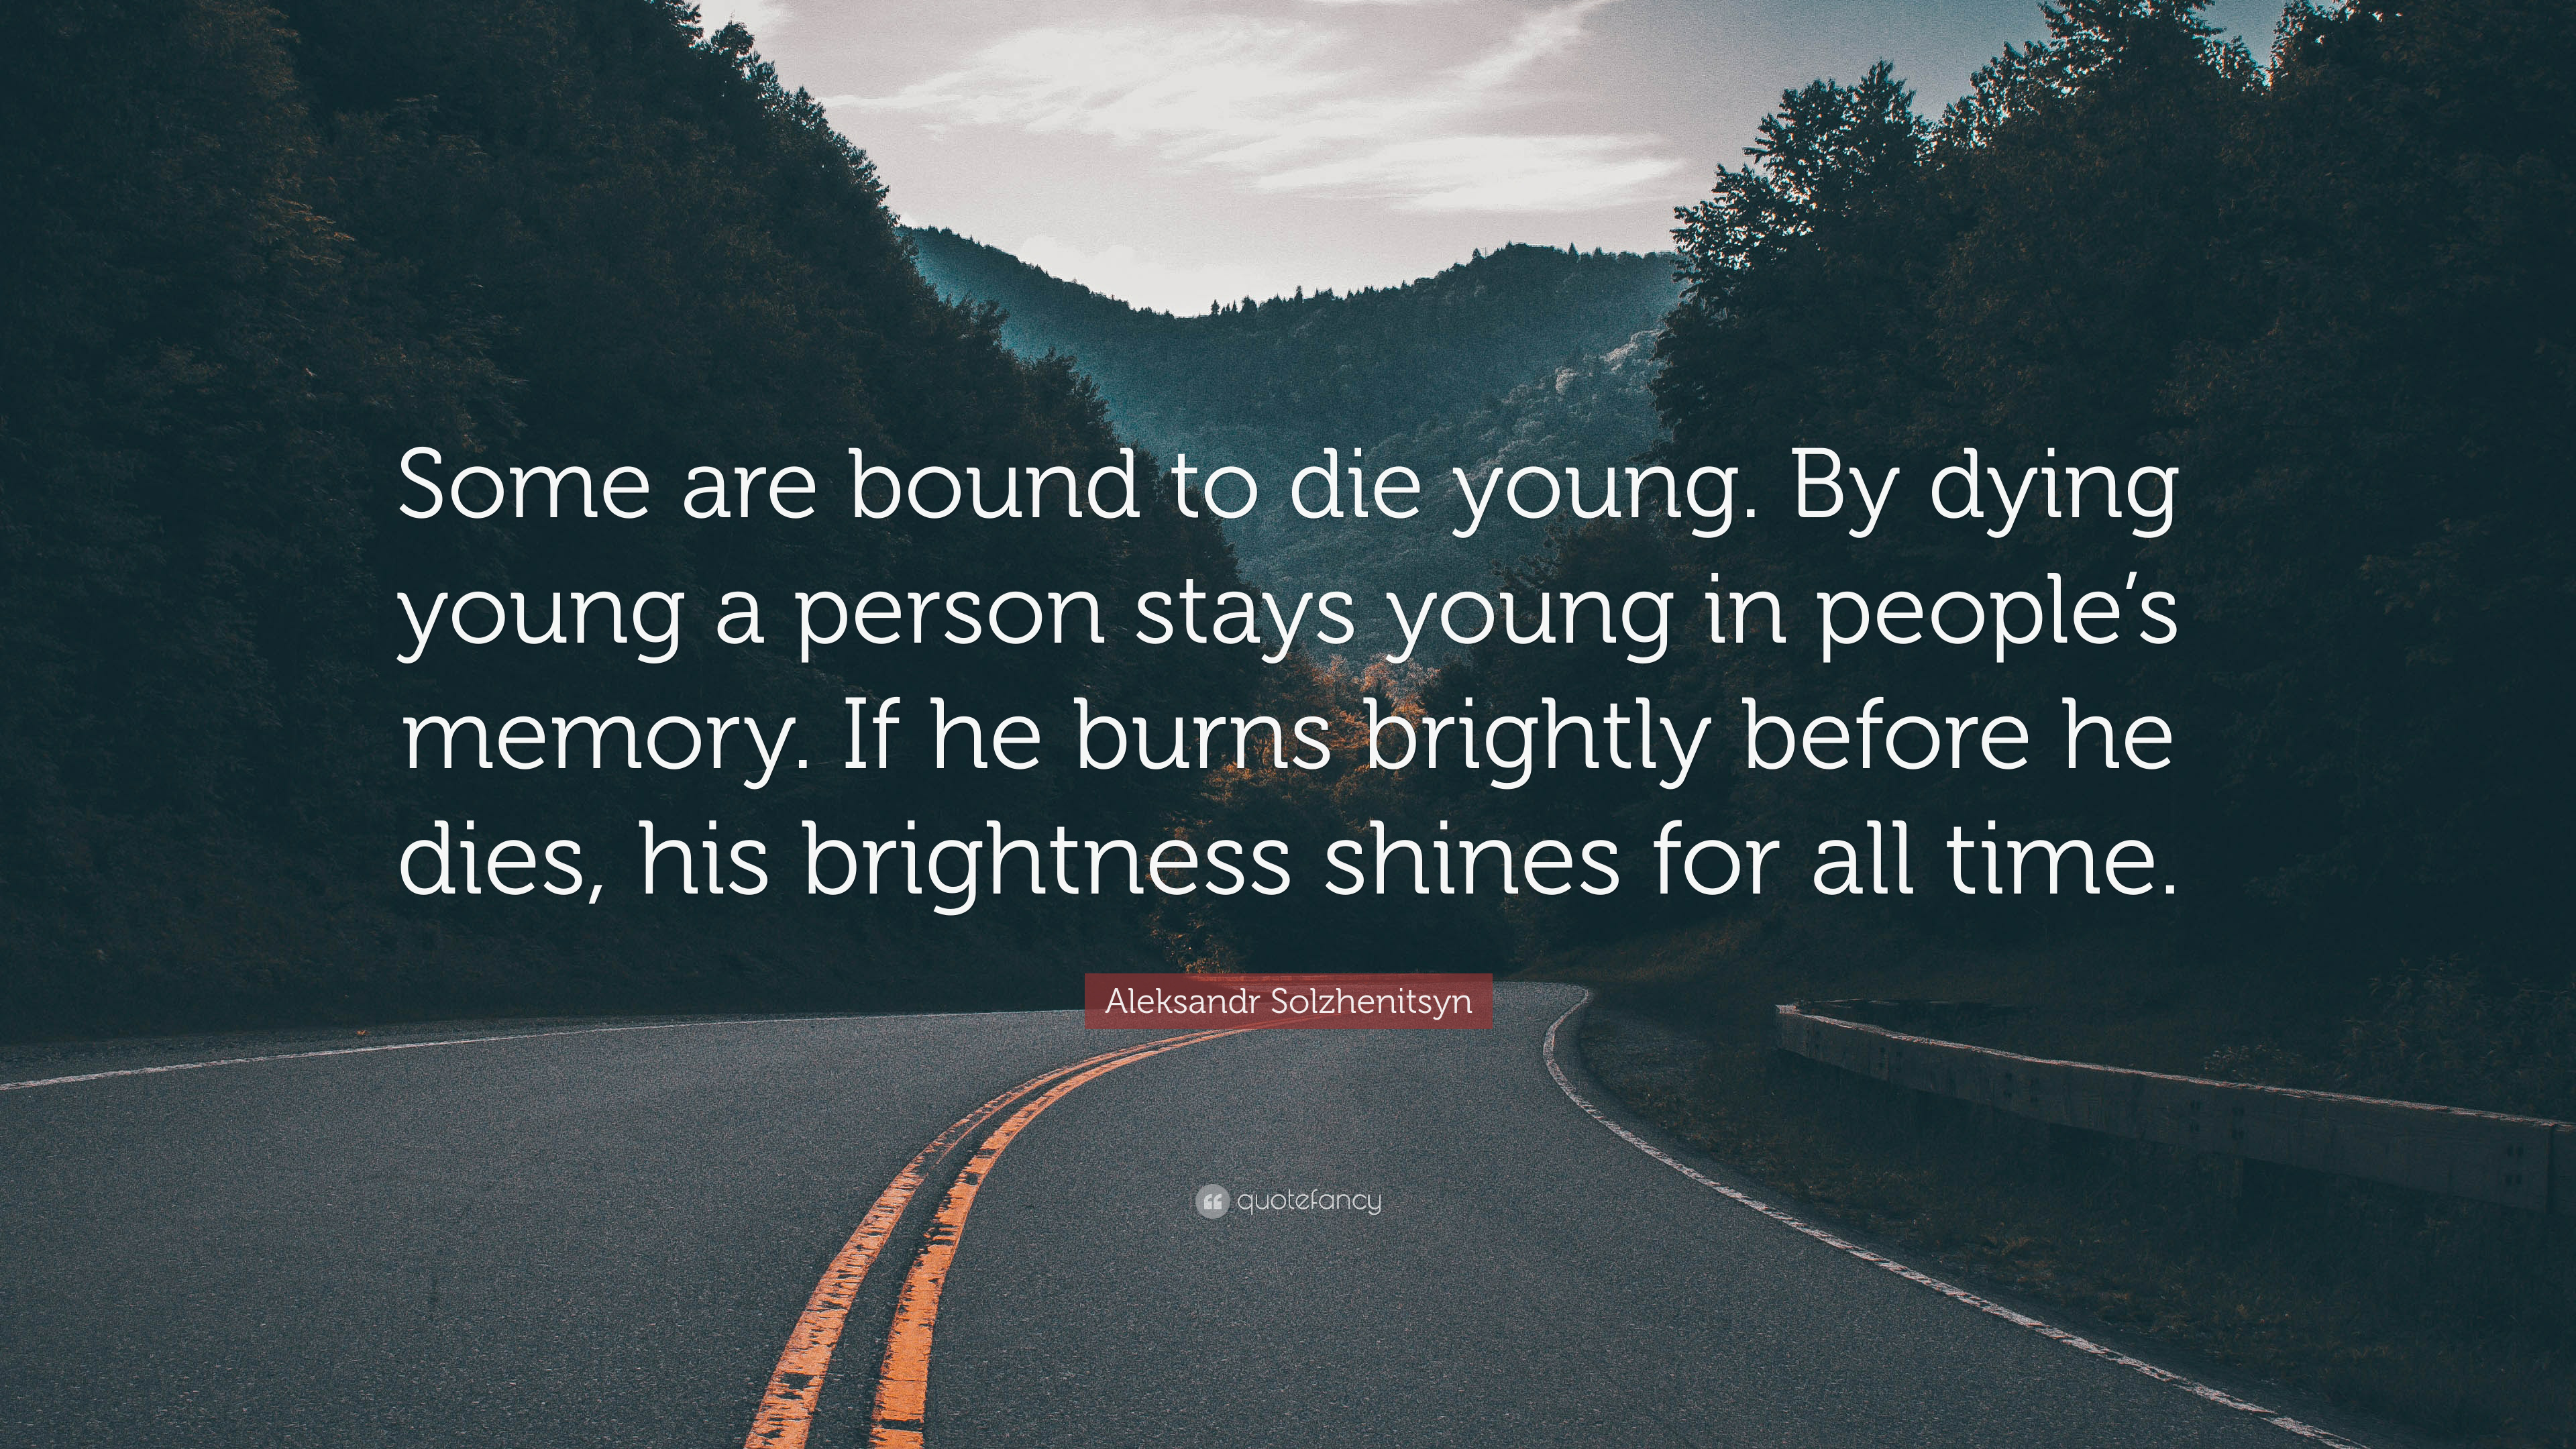 """Quotes About Dying Young Aleksandr Solzhenitsyn Quote: """"Some are bound to die young. By  Quotes About Dying Young"""